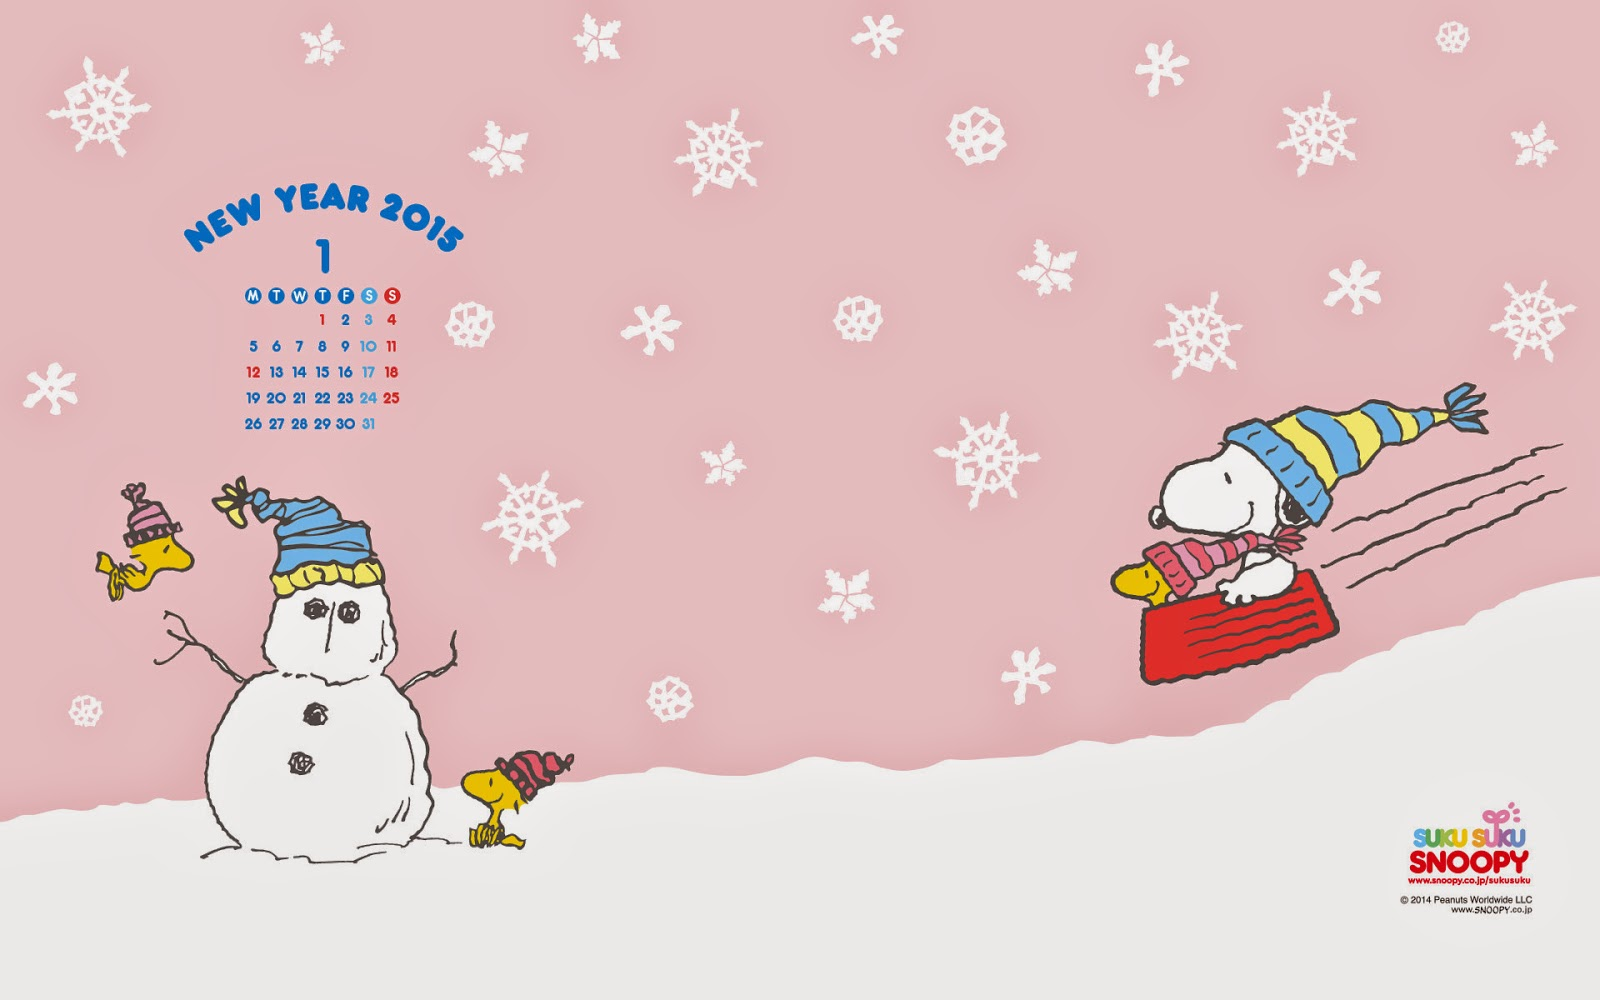 I Love Kawaii Snoopy January 2015 Wallpaper Calendar